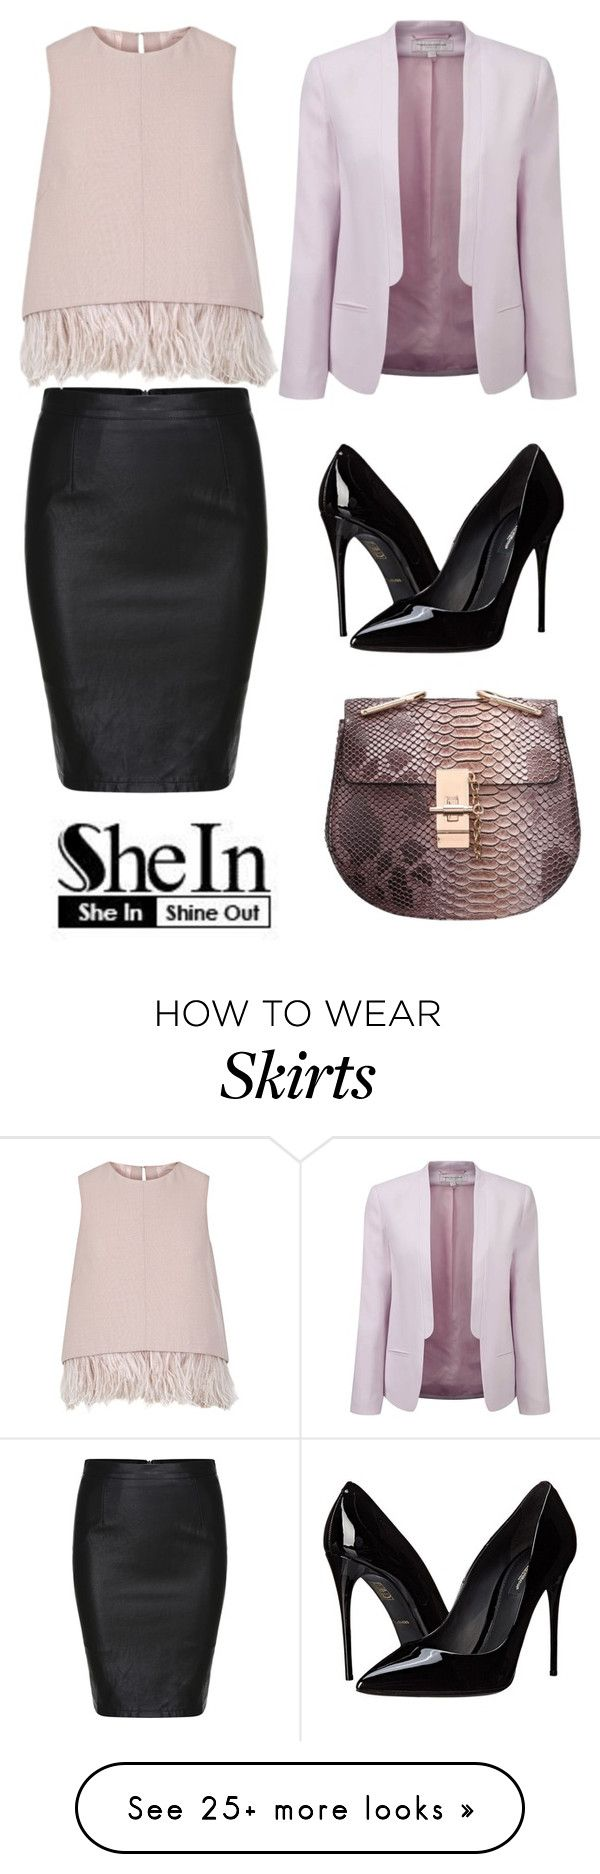 """Black Split Slim PU Skirt by Shein"" by ella178 on Polyvore featuring Mode, French Connection, The 2nd Skin Co. und Dolce&Gabbana"